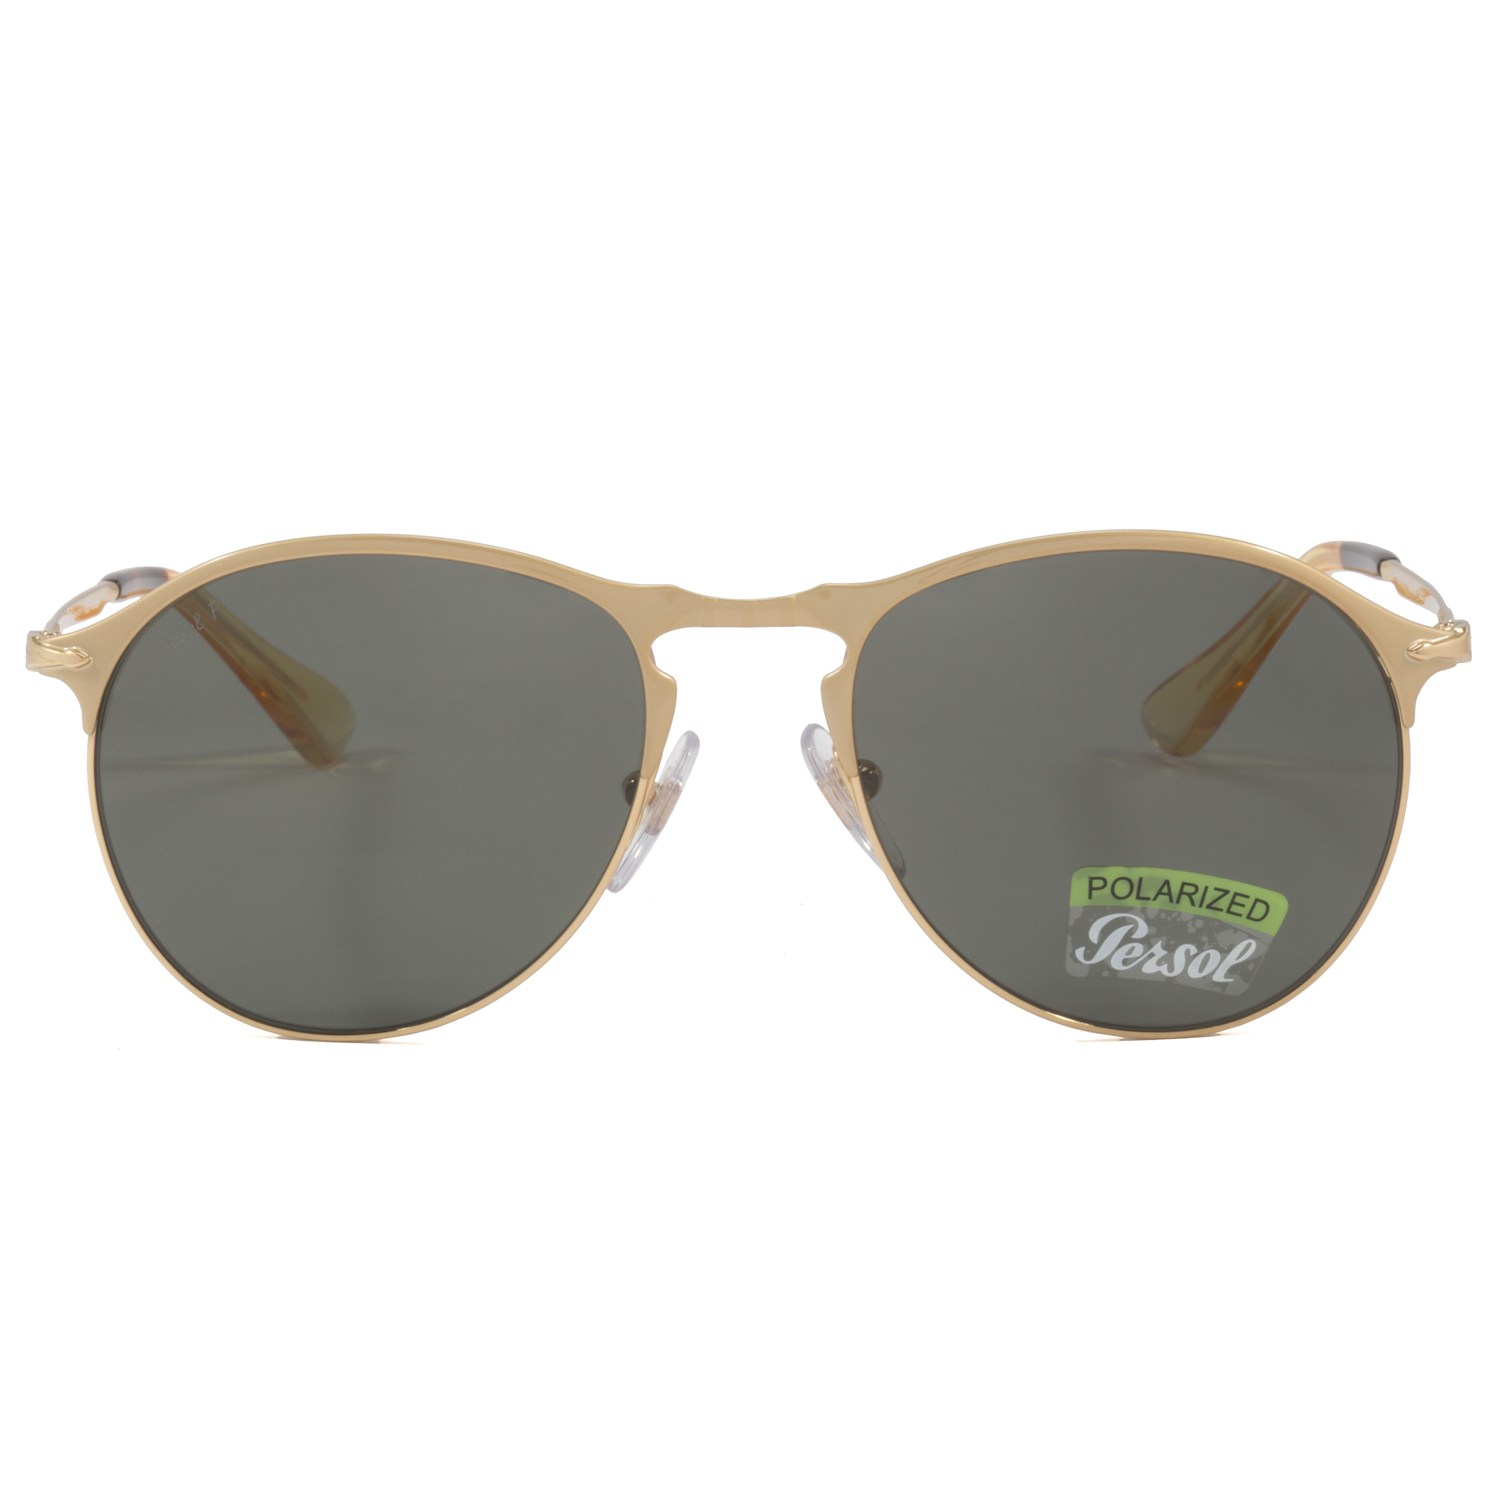 Wear you Trendswould round sunglasses advise dress in winter in 2019